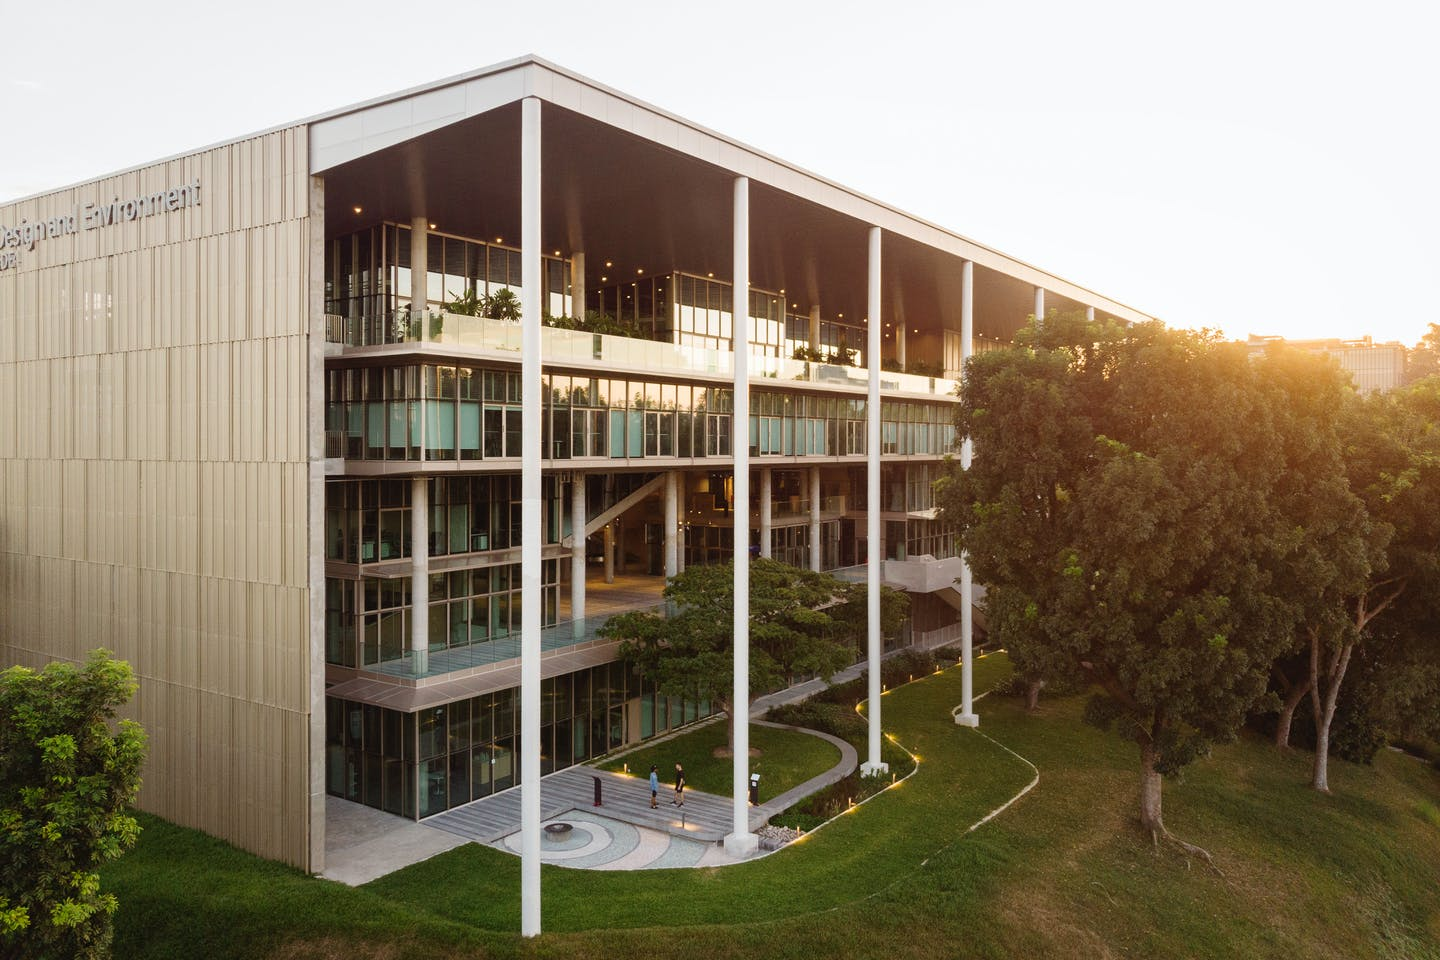 NUS SDE4 receives international recognition for building features designed to improve health and wellness